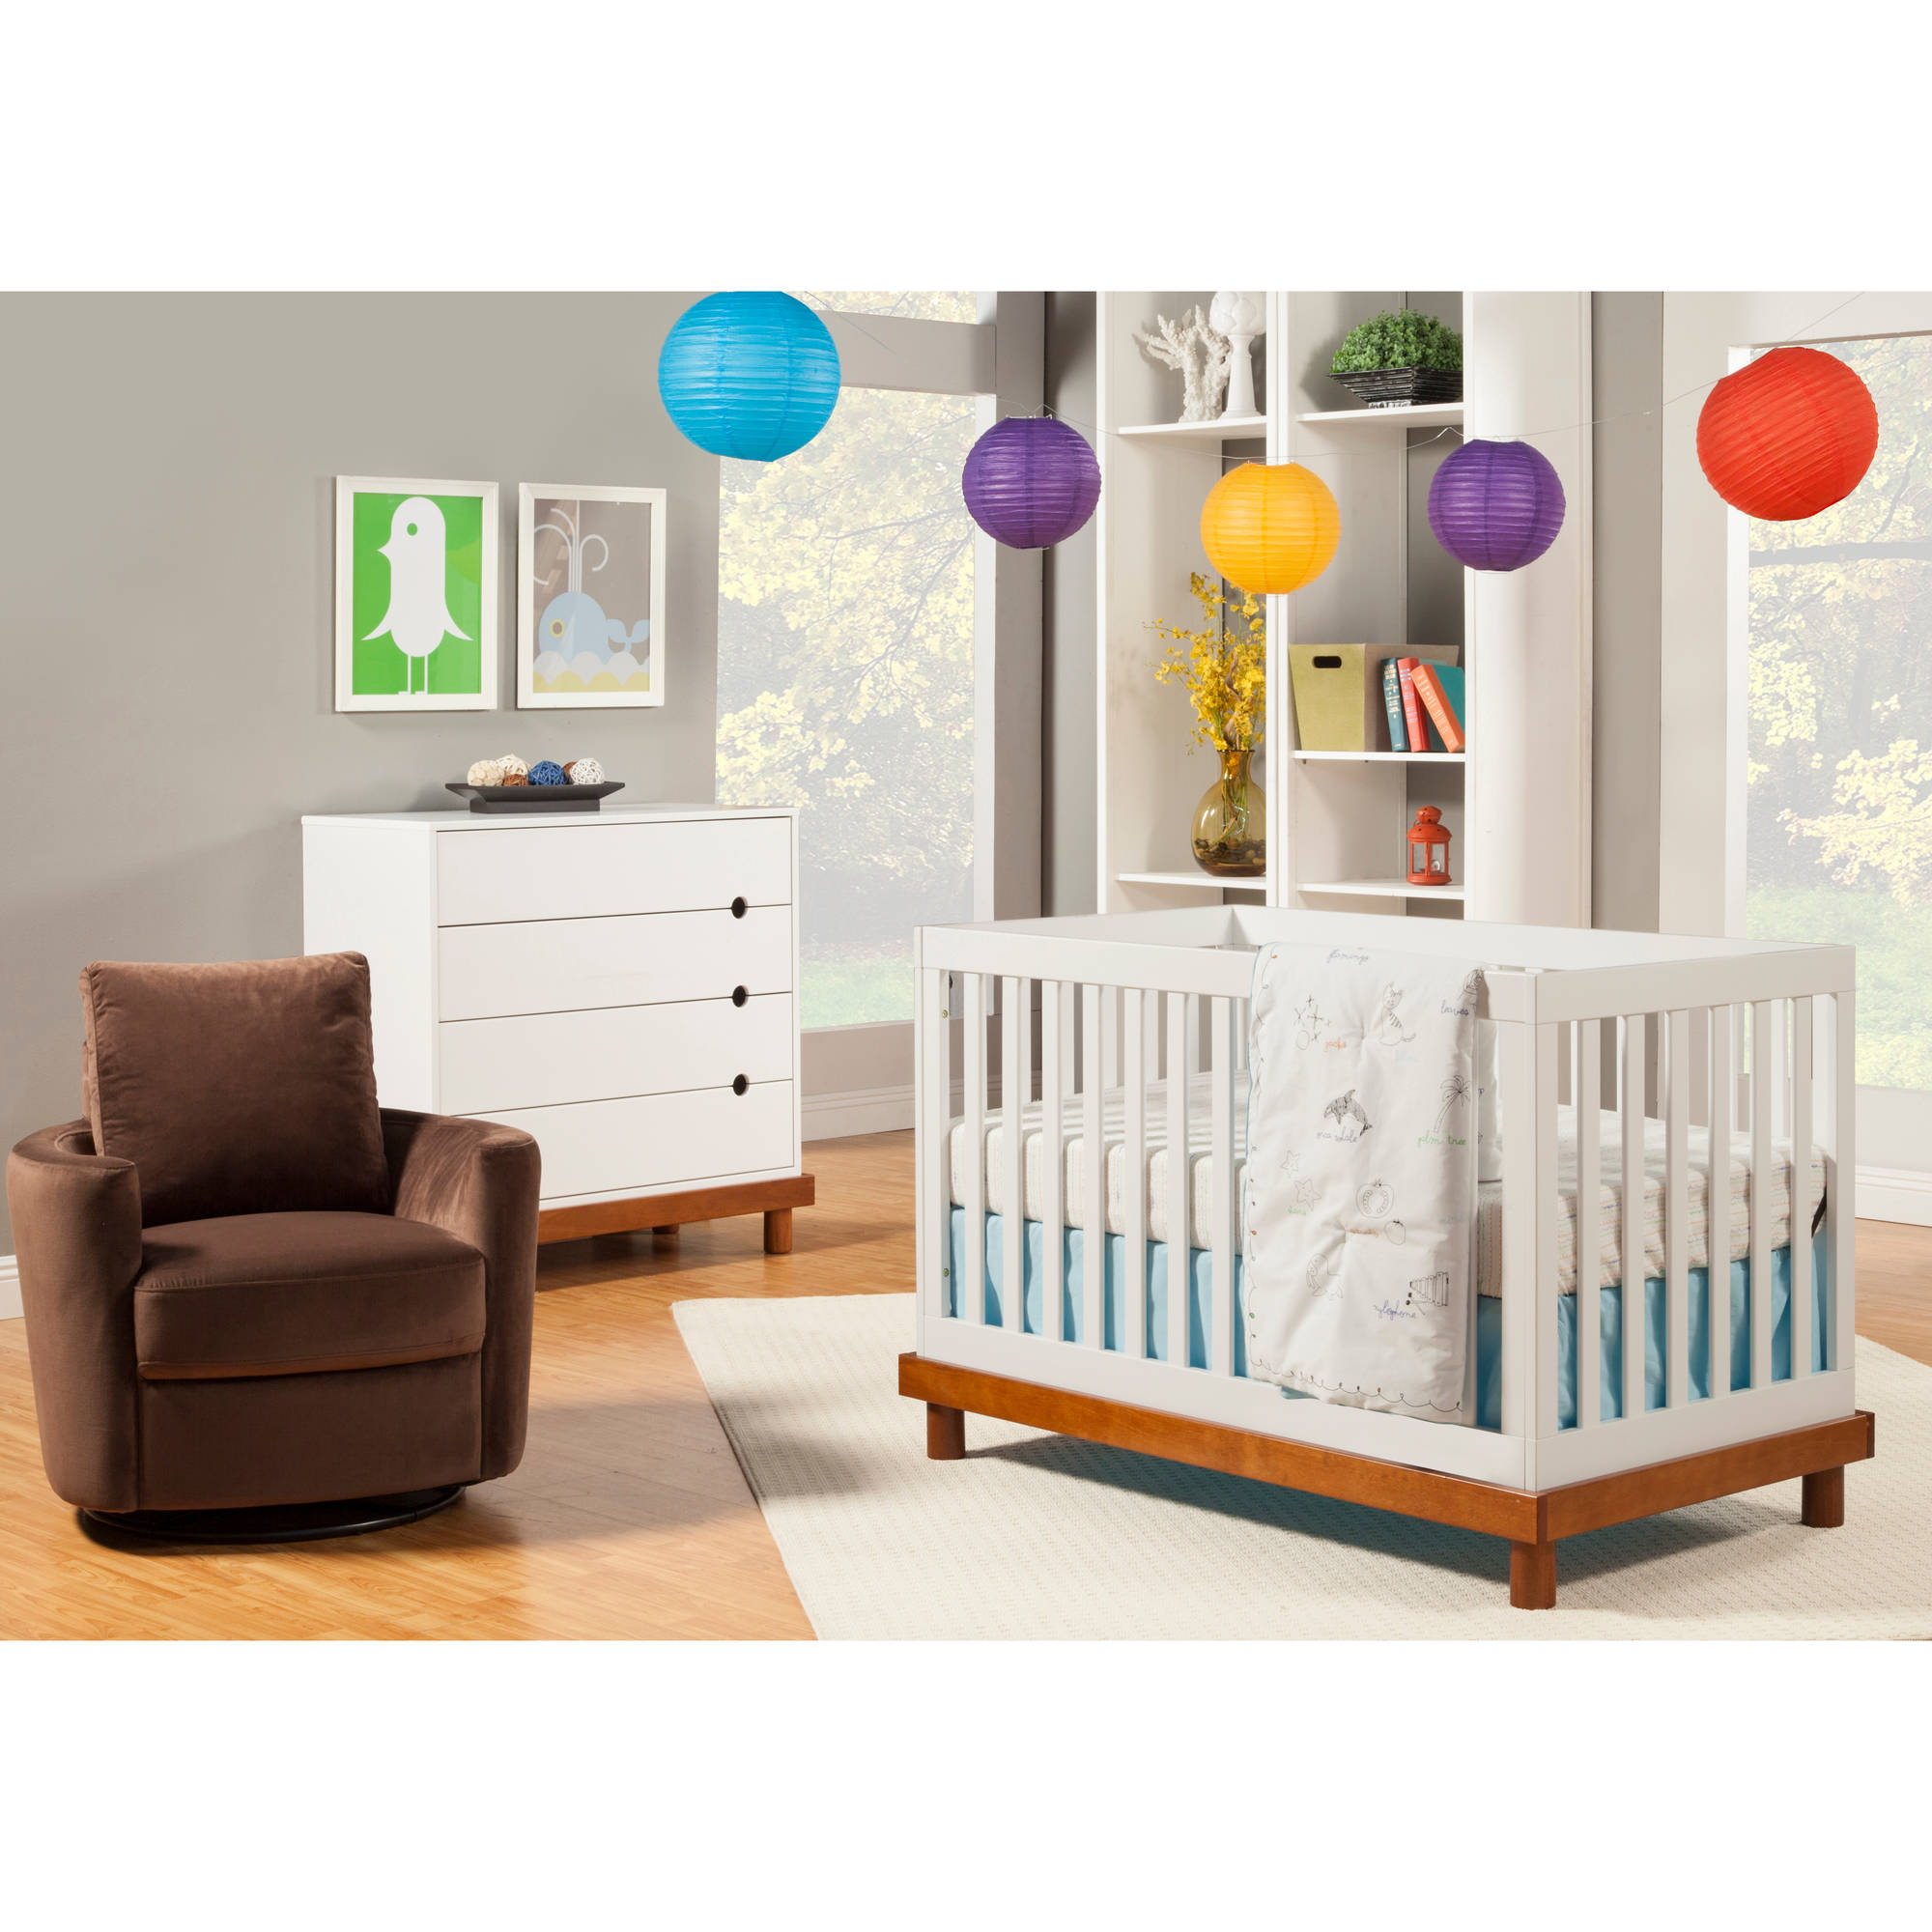 Baby Mod - Olivia 3-in-1 Baby Crib, Choose Your Finish